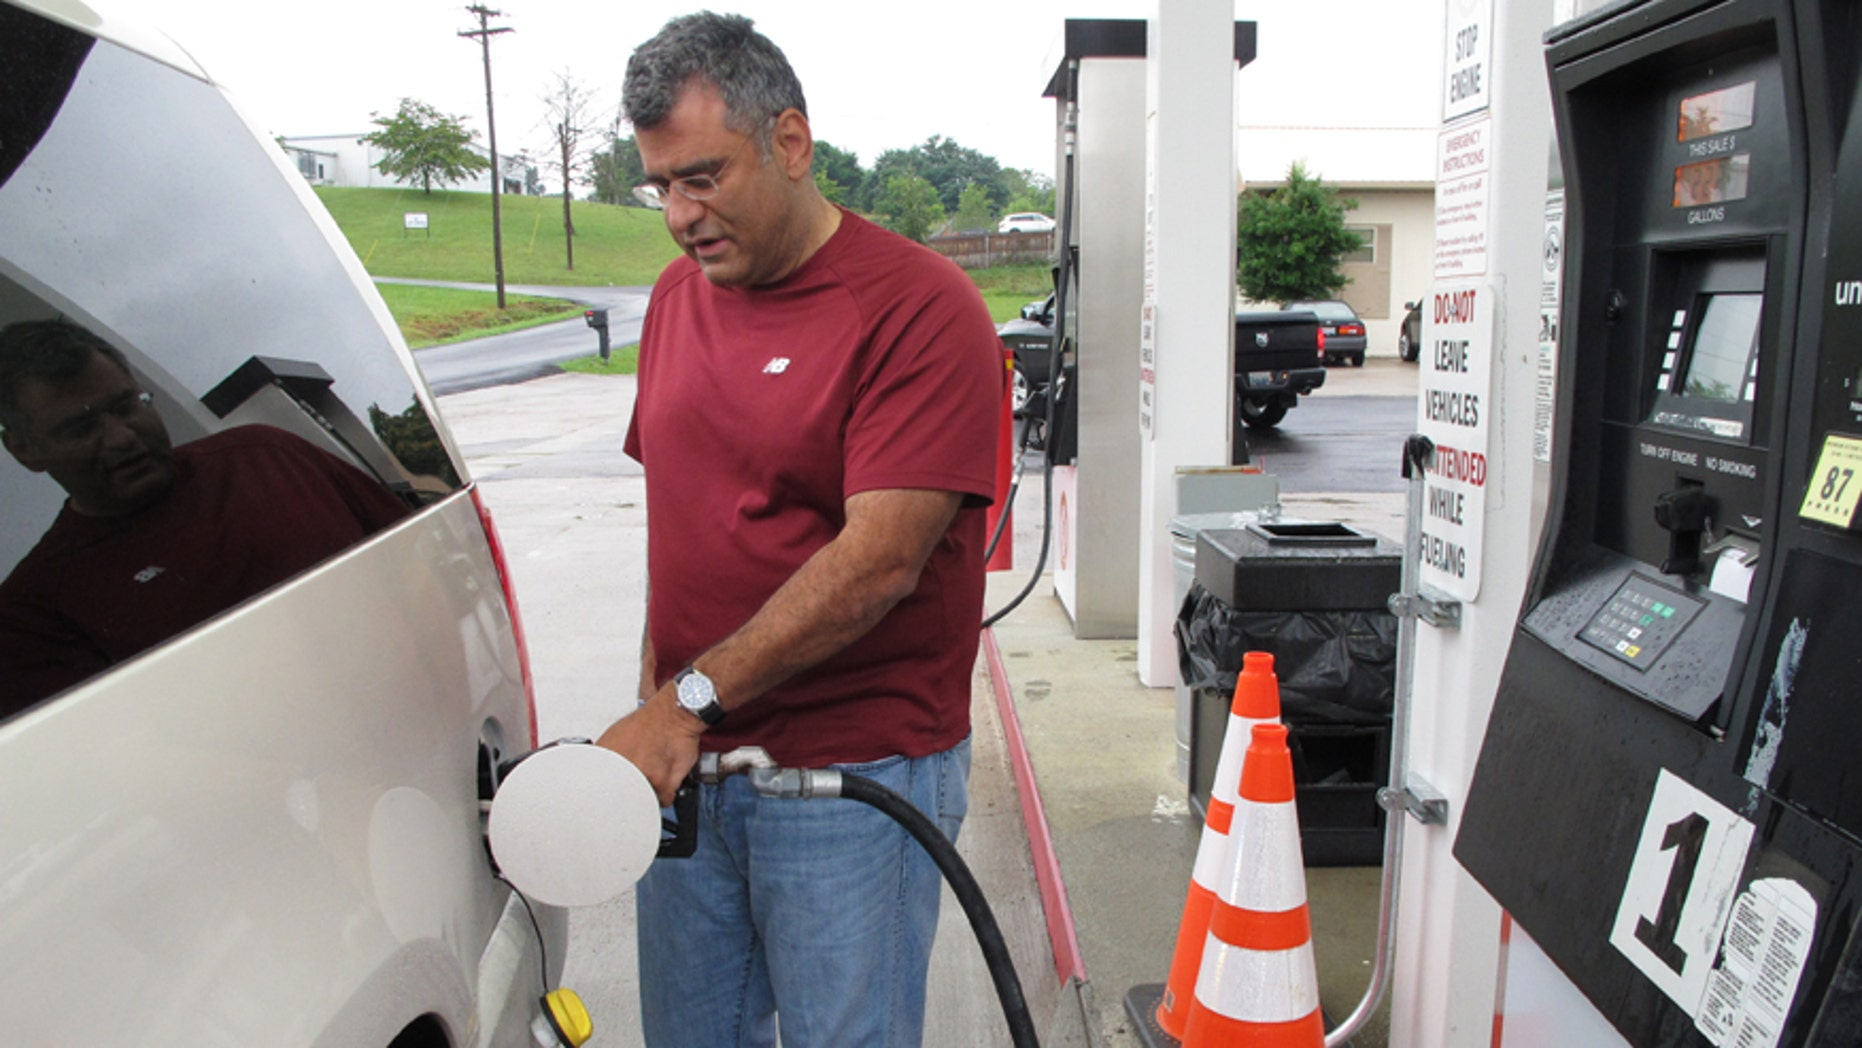 Samir Cook fills up his vehicle at a city-run station on Saturday, July 19, 2014, in Somerset, Ky. The station on the outskirts of Somerset opened to the public on Saturday, selling regular unleaded gas for $3.36 a gallon. In the first three hours, about 75 customers fueled up at the no-frills city station, where there are no snacks, no repairs and only regular unleaded gas. The citys mayor says he hopes the no-frills station will lower gas prices around town. (AP Photo/Bruce Schreiner)